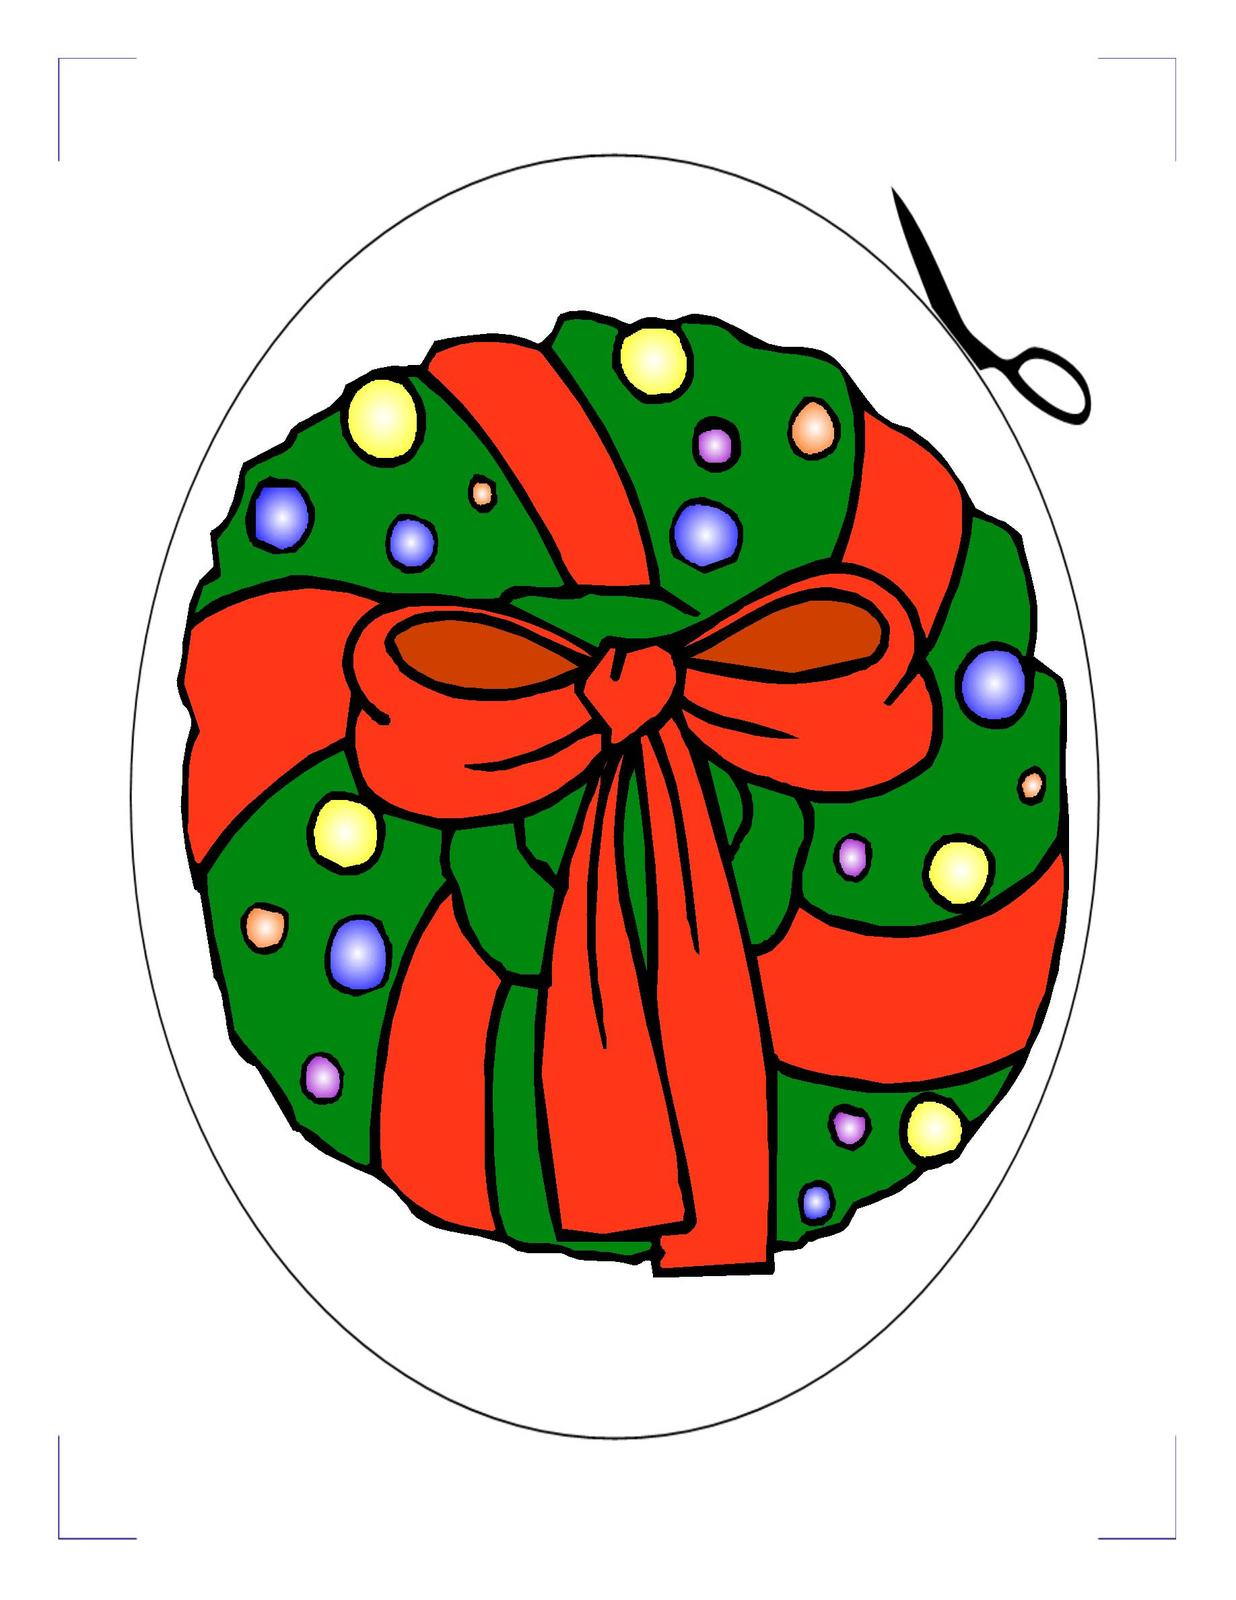 Wreath coaster